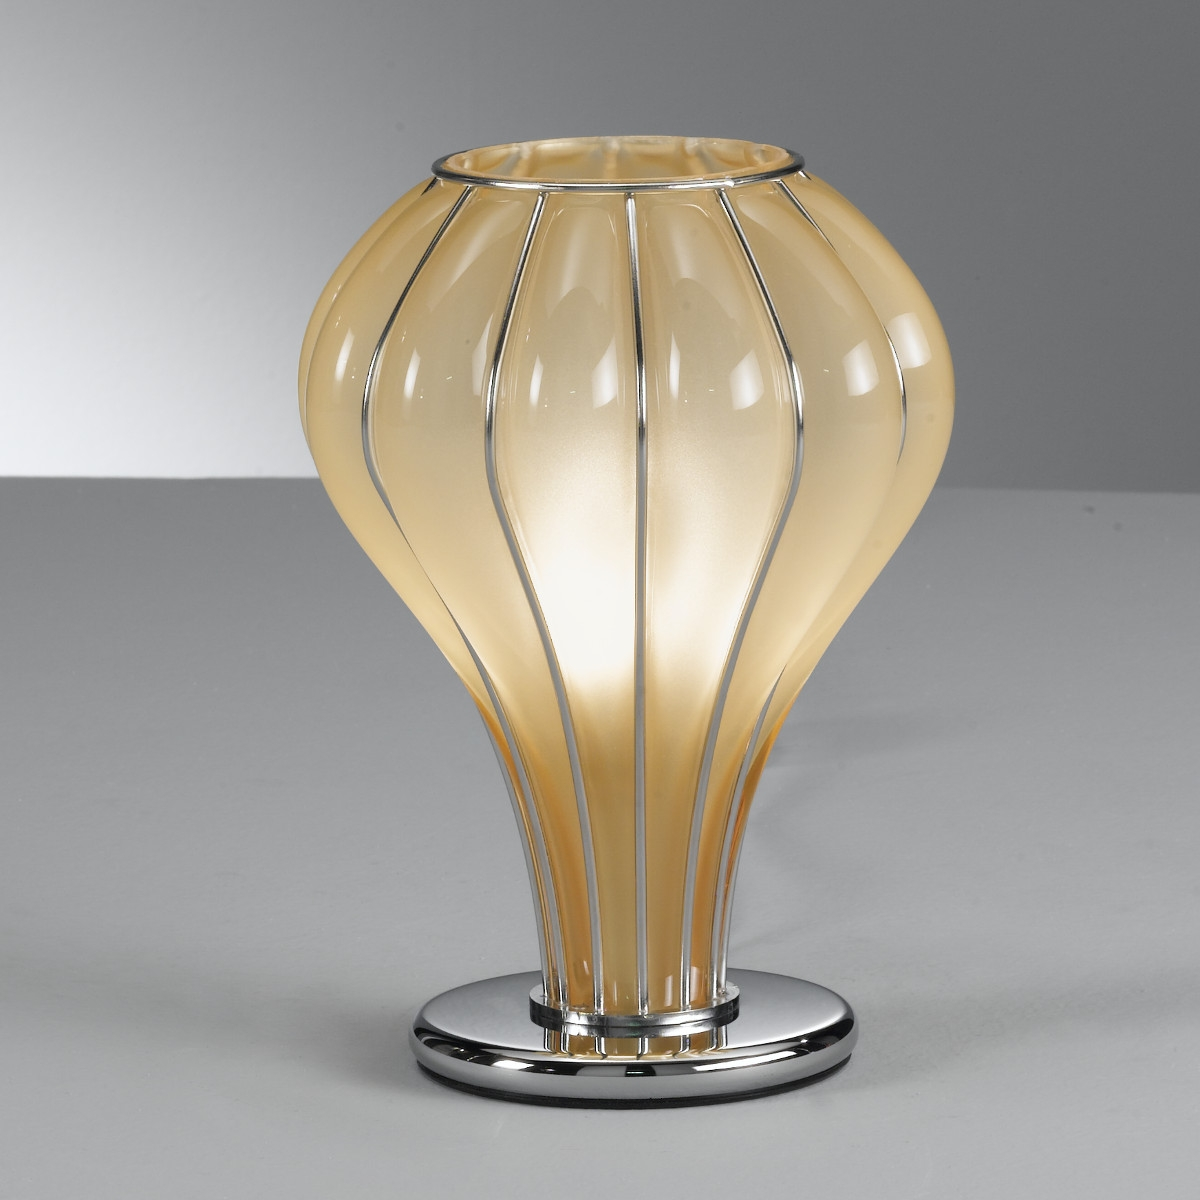 Lampe de table au design moderne en verre souffl de murano - Table moderne en verre ...